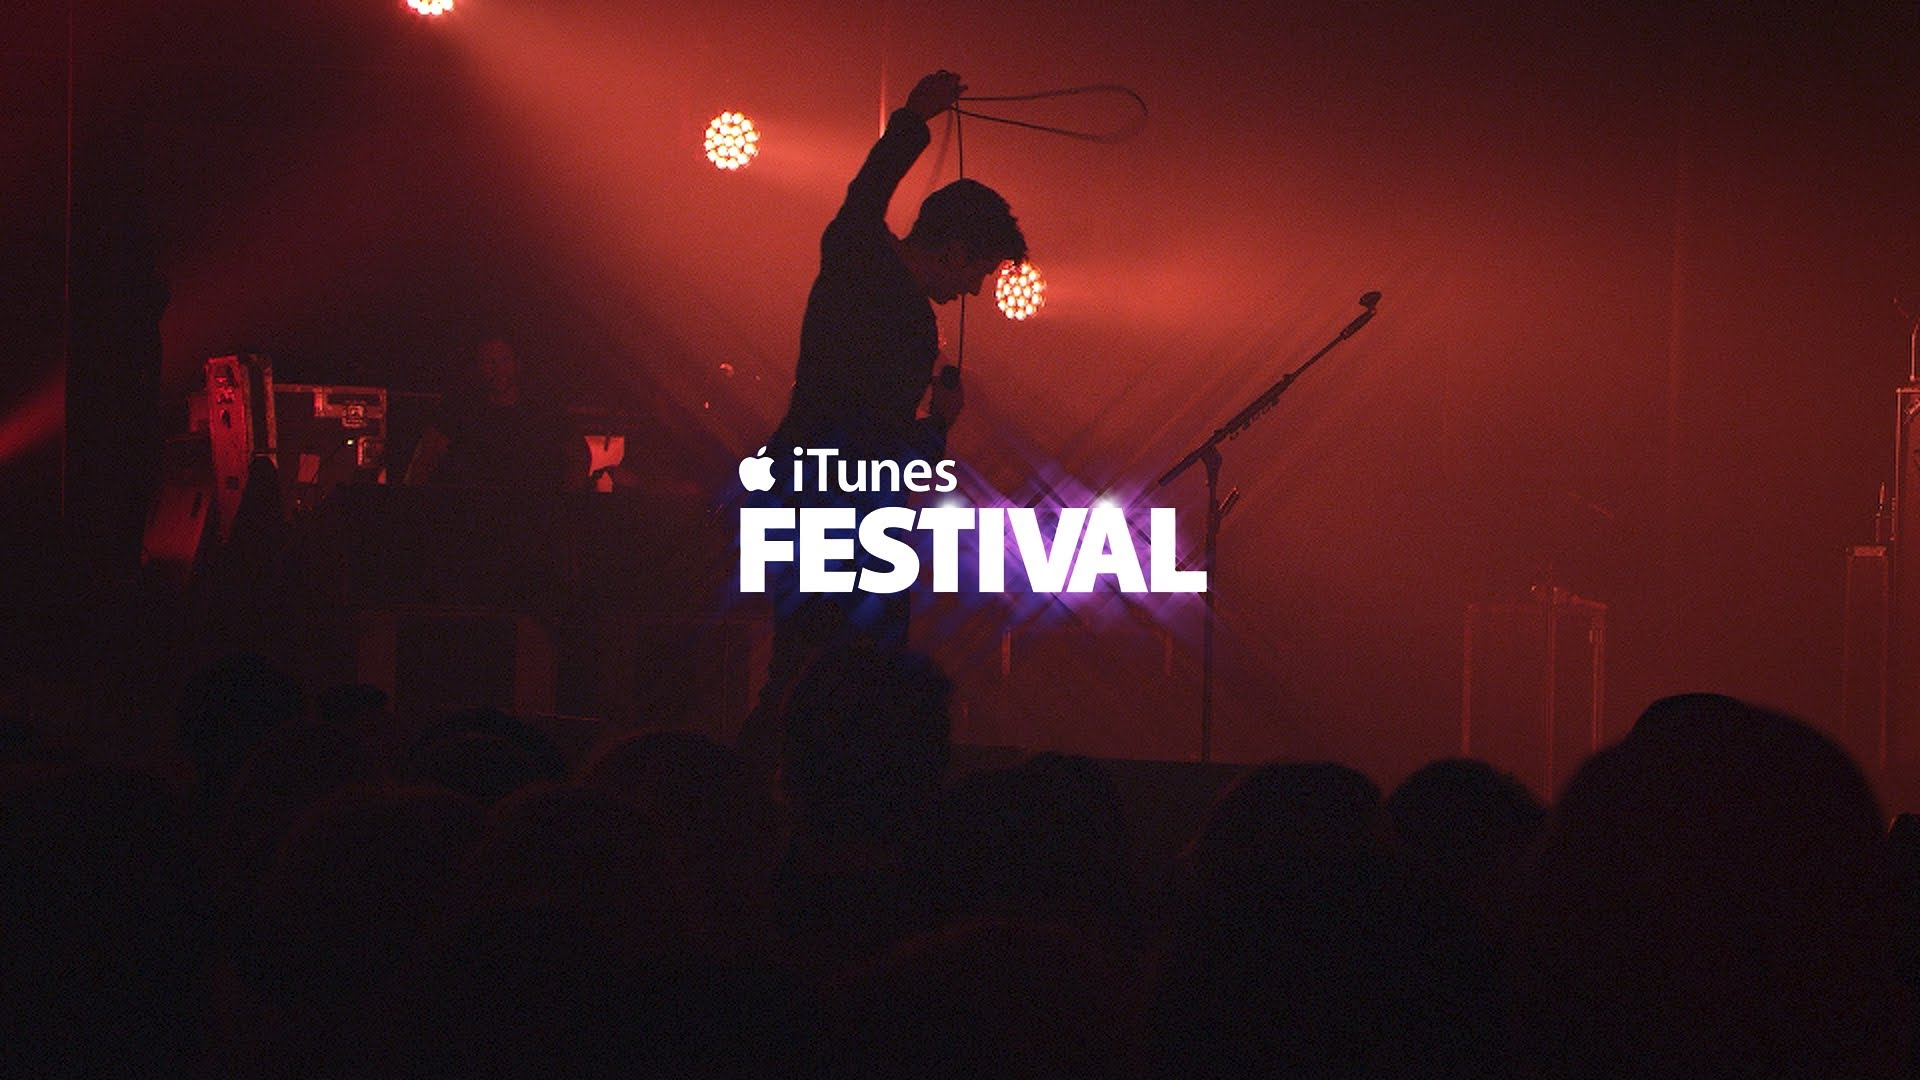 Apple – iTunes Festival 2013 – Moments